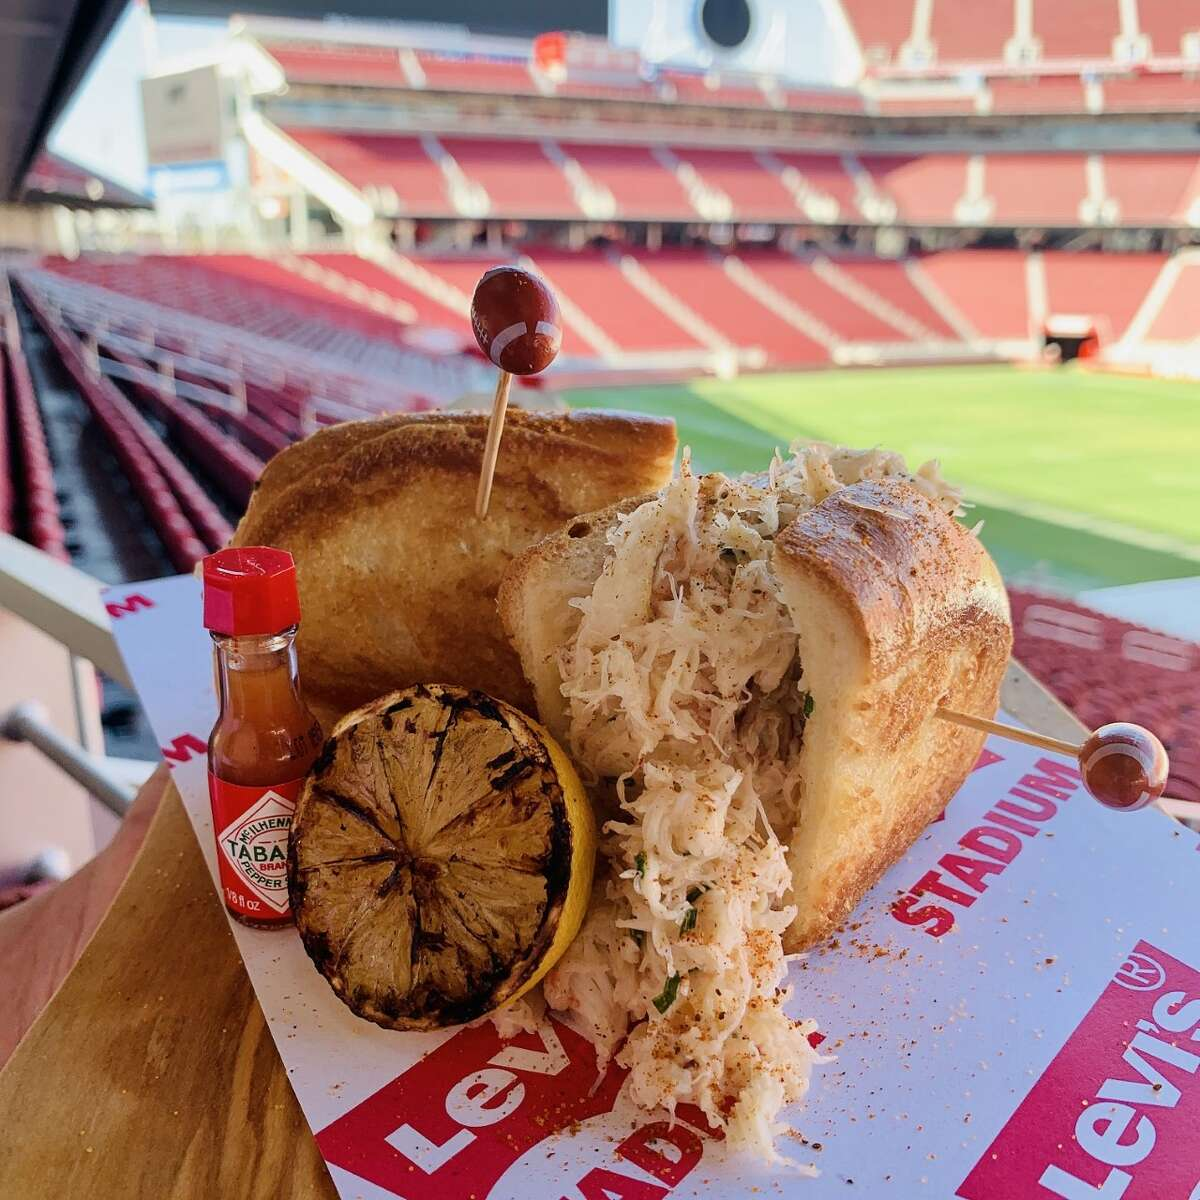 Click on the slideshow ahead to see the new food options at Levi's Stadium >>> Dungeness crab roll(by Levy Restaurants) One of the newest food items at Levi Stadium includes a Dungeness crab roll made with fresh Dungeness crab and chives on a LeBoulanger buttered spilt-top roll.